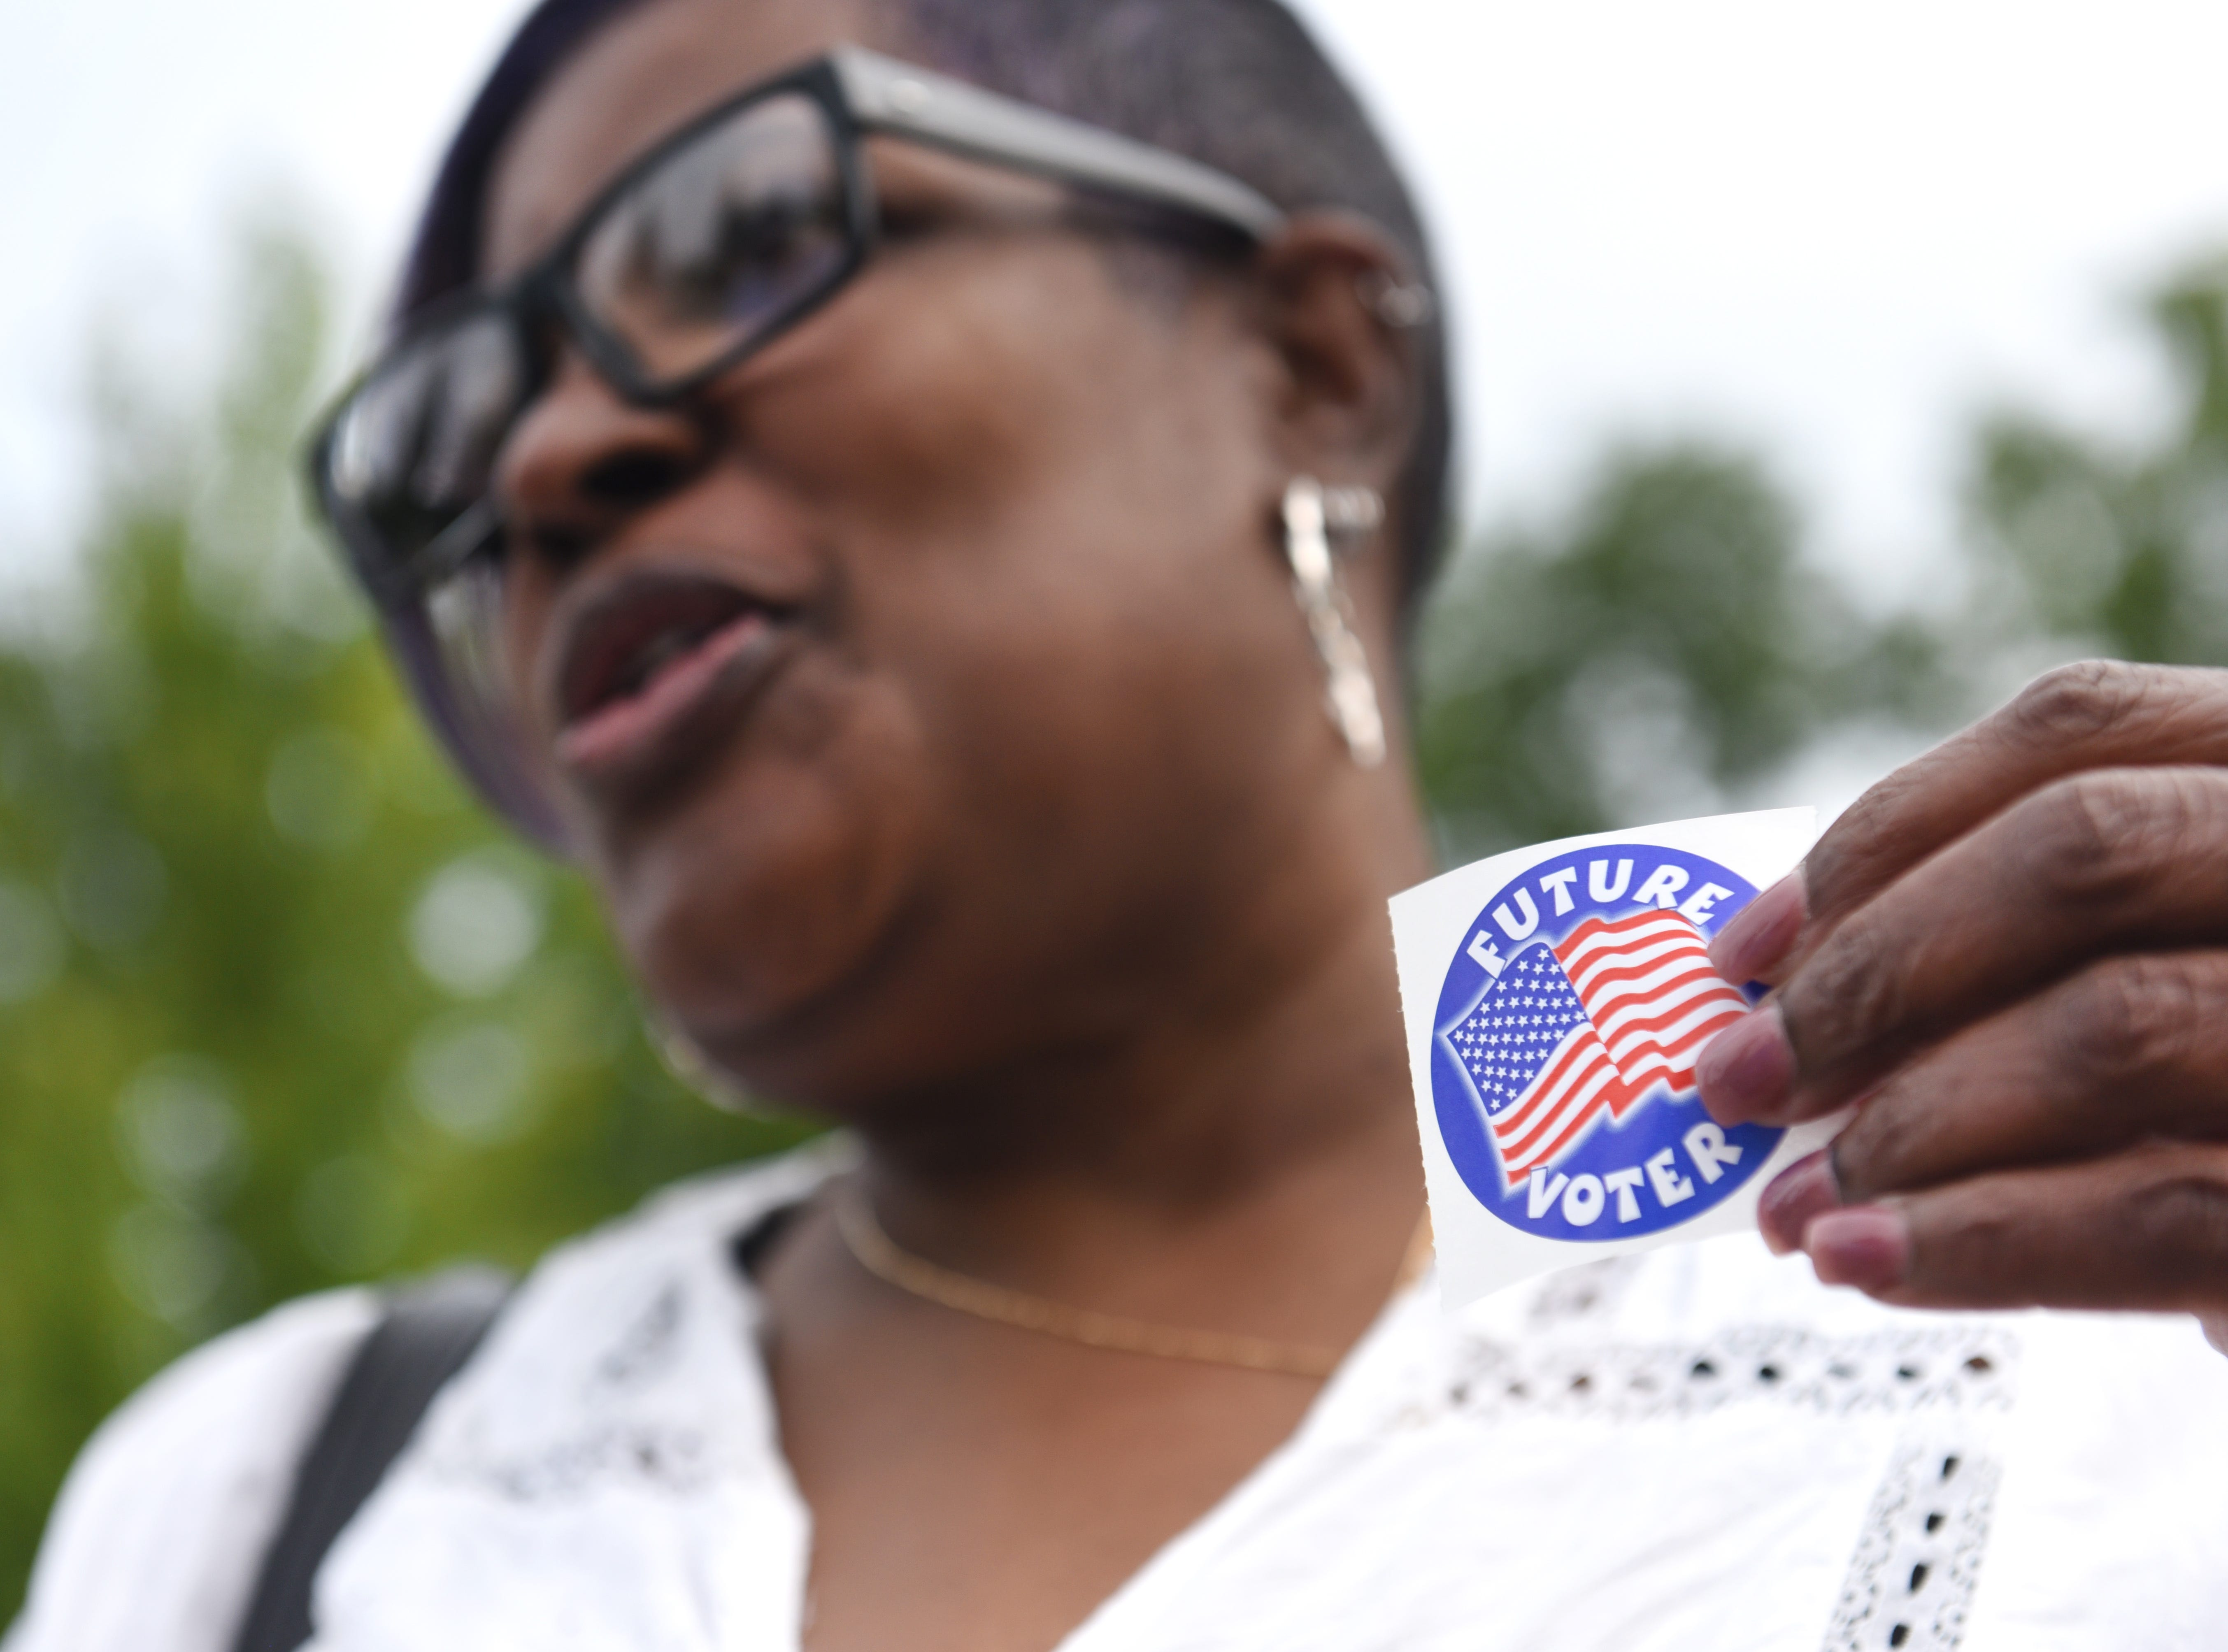 Deborah King of Farmington Hills talks about the importance of voting and holds a sticker for future voters outside Orchard United Methodist Church in Farmington Hills.